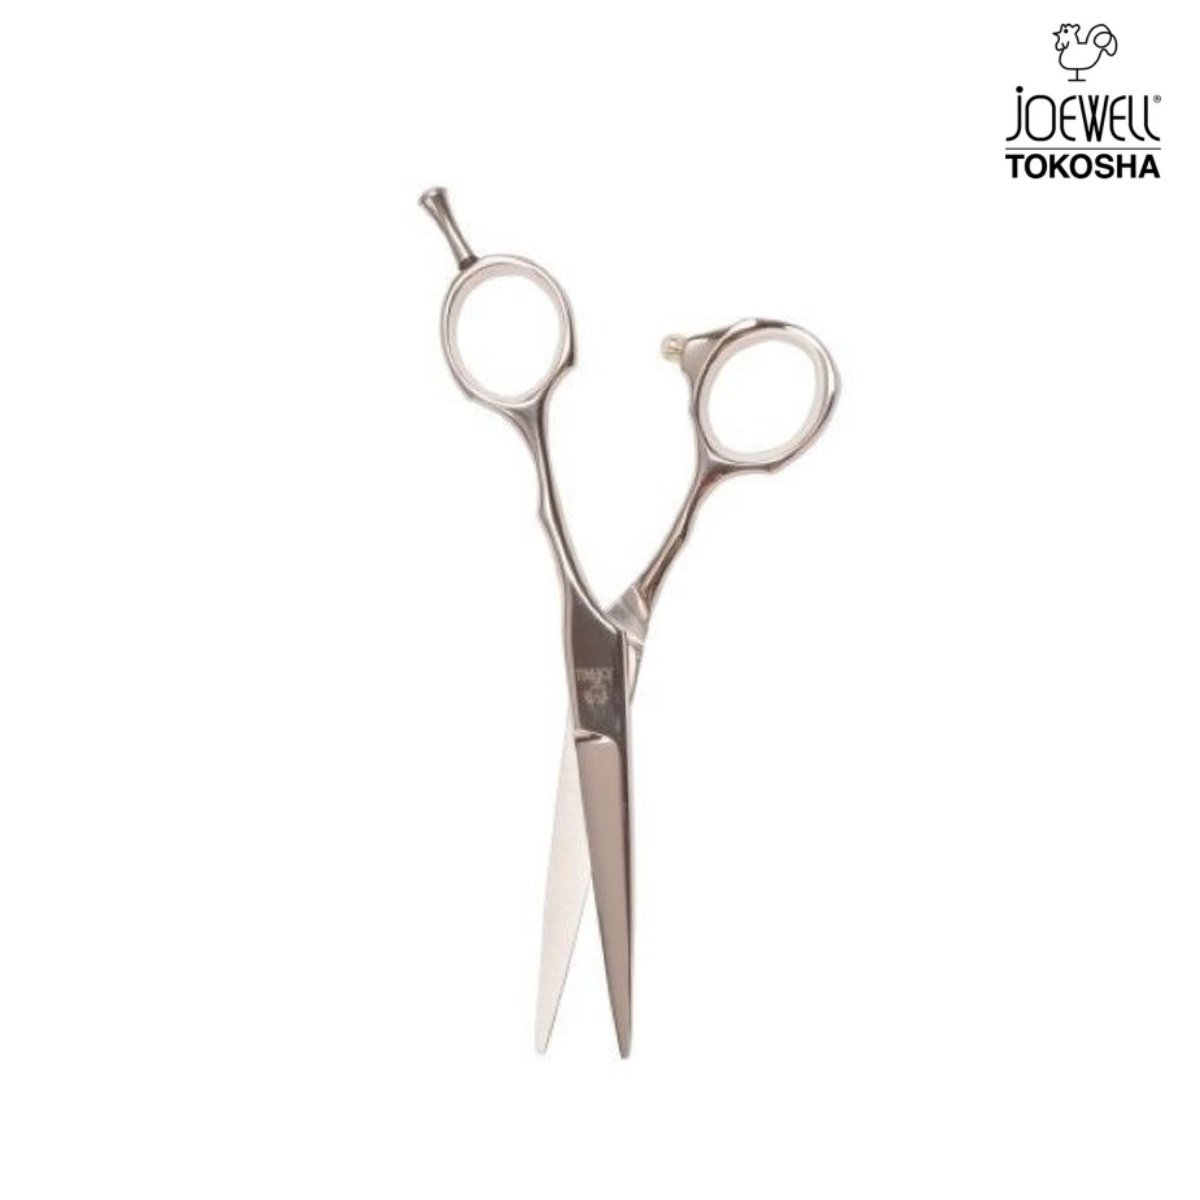 Joewell SZ Semi Hair Scissor - Japan Scissors